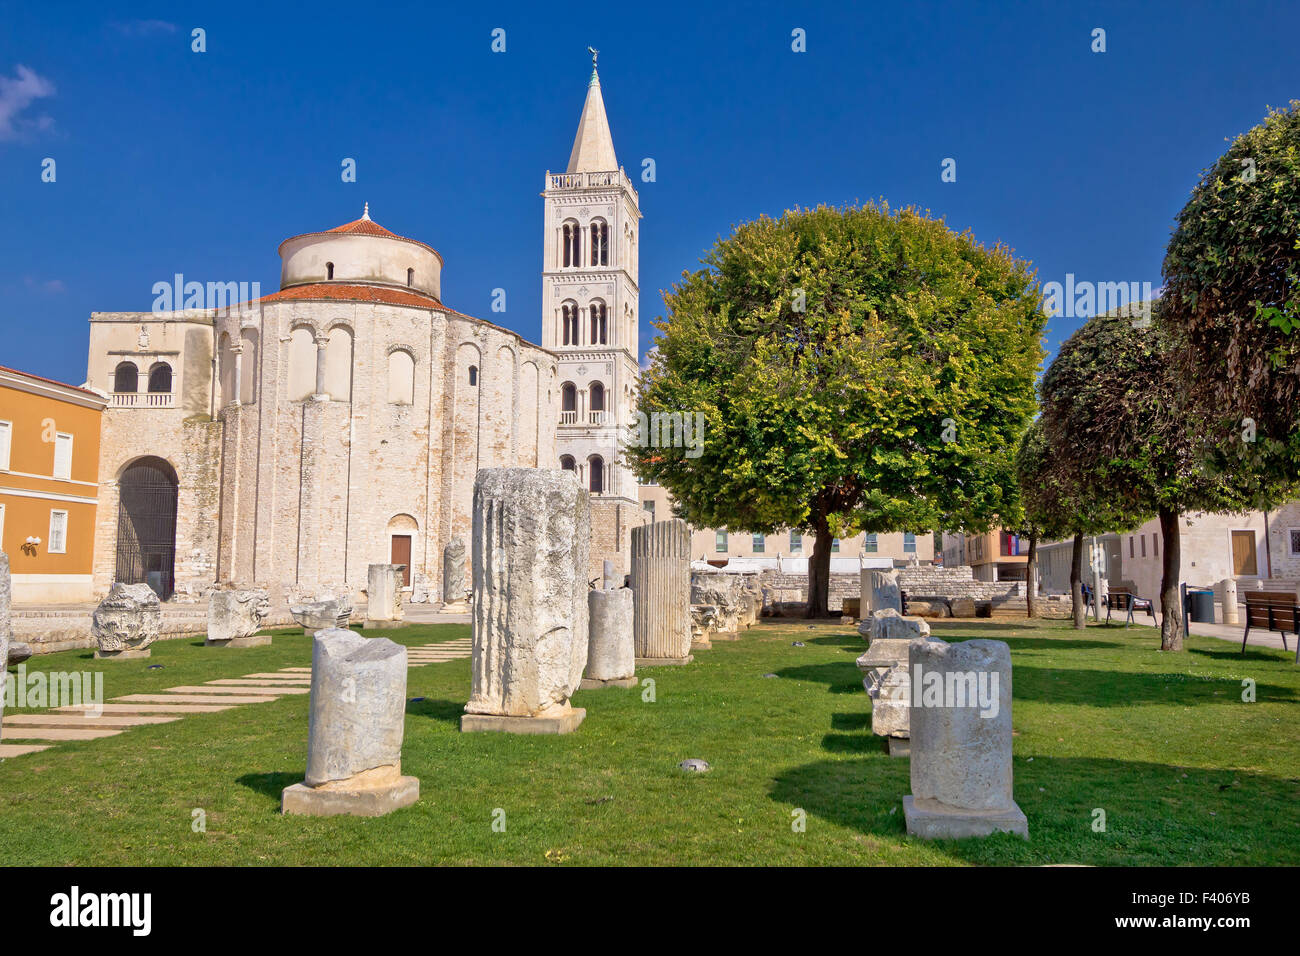 Historic roman artefacts on Zadar square - Stock Image